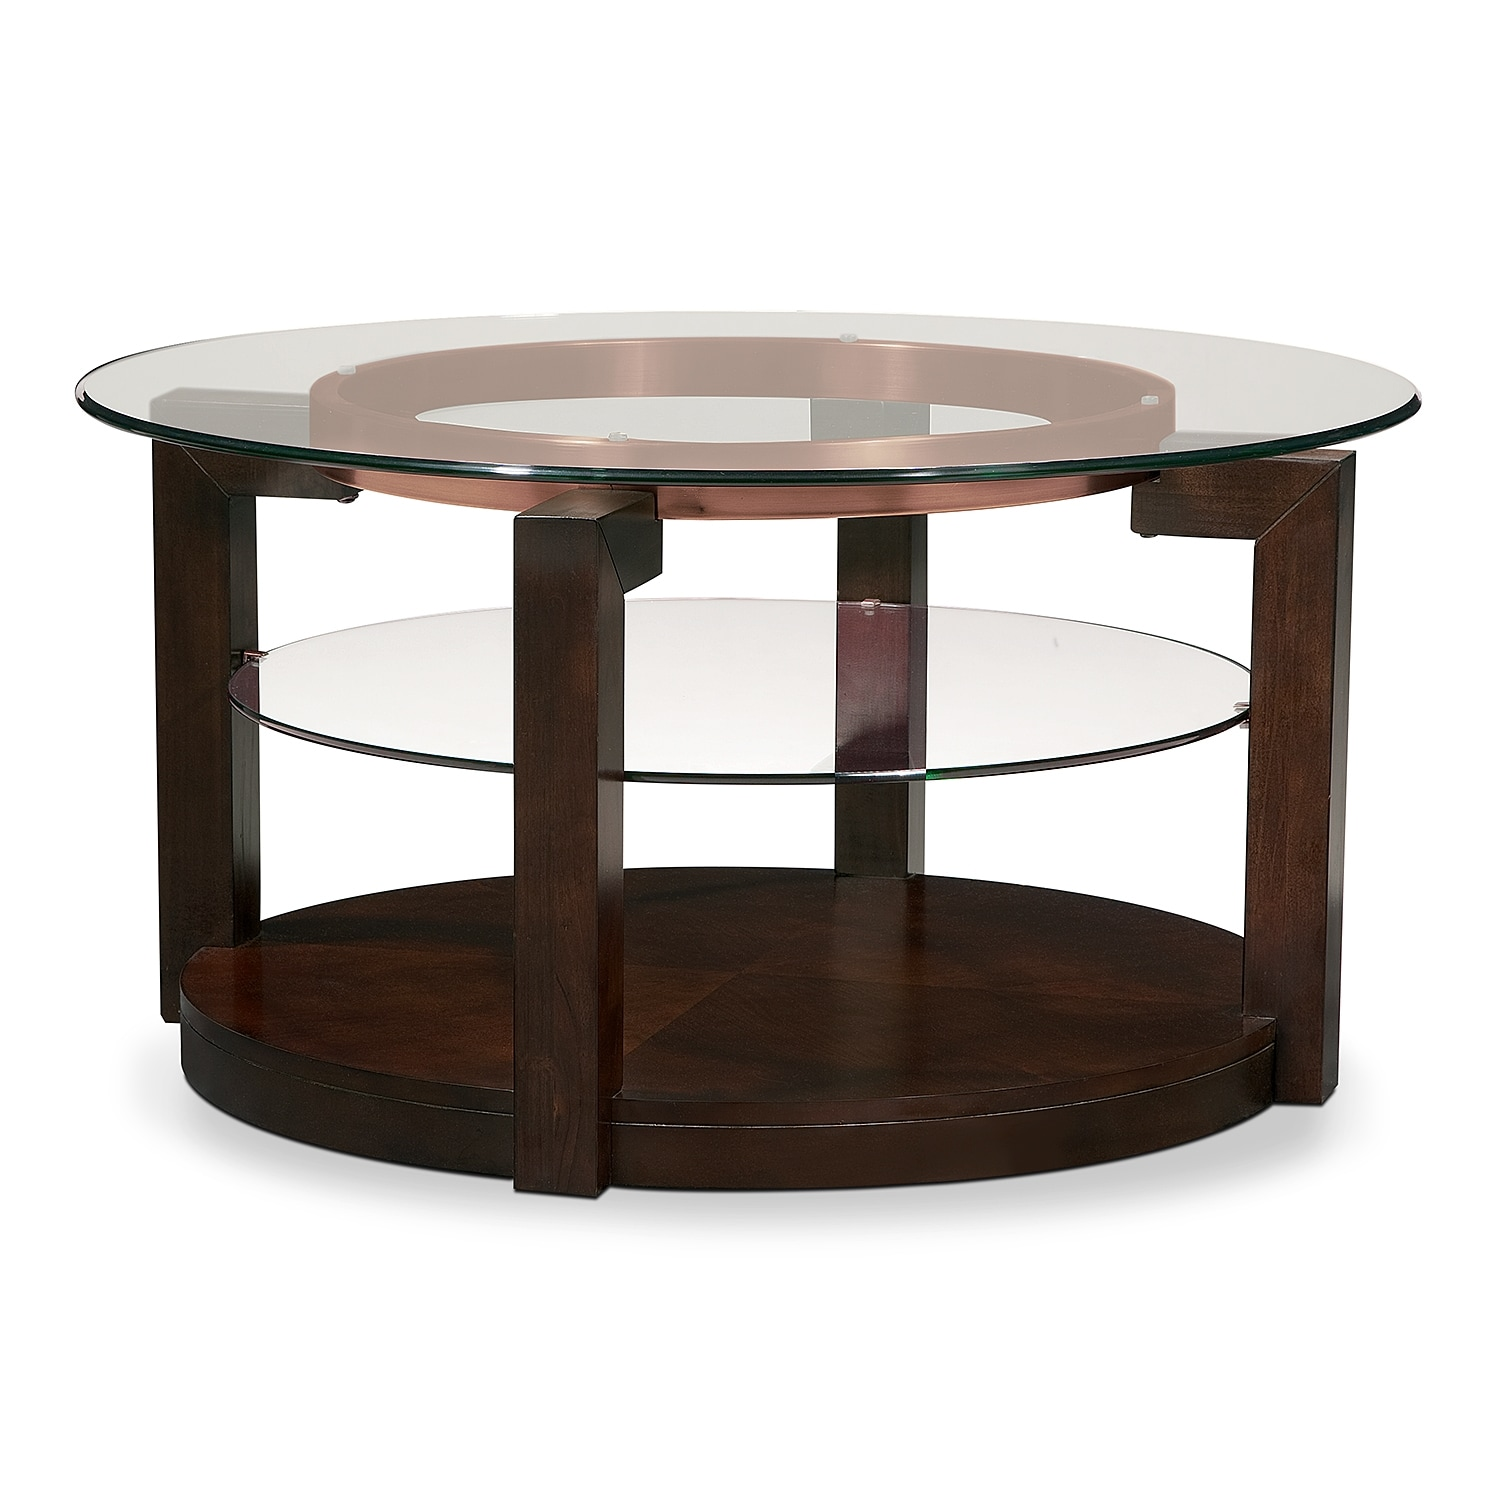 auburn cocktail table value city furniture. Black Bedroom Furniture Sets. Home Design Ideas